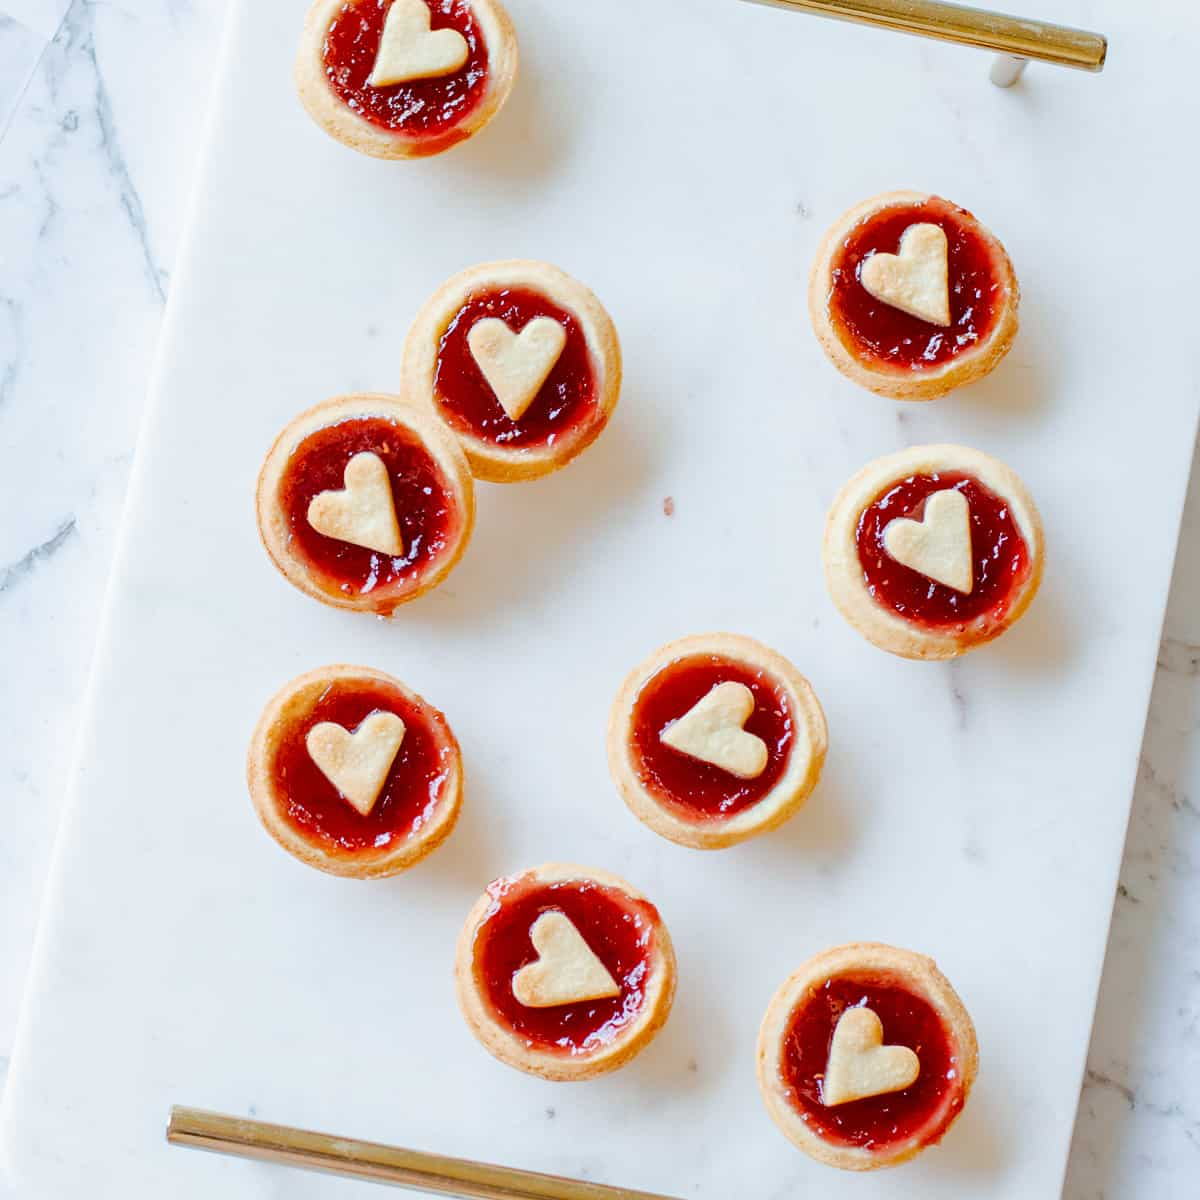 jam tarts with hearts on top